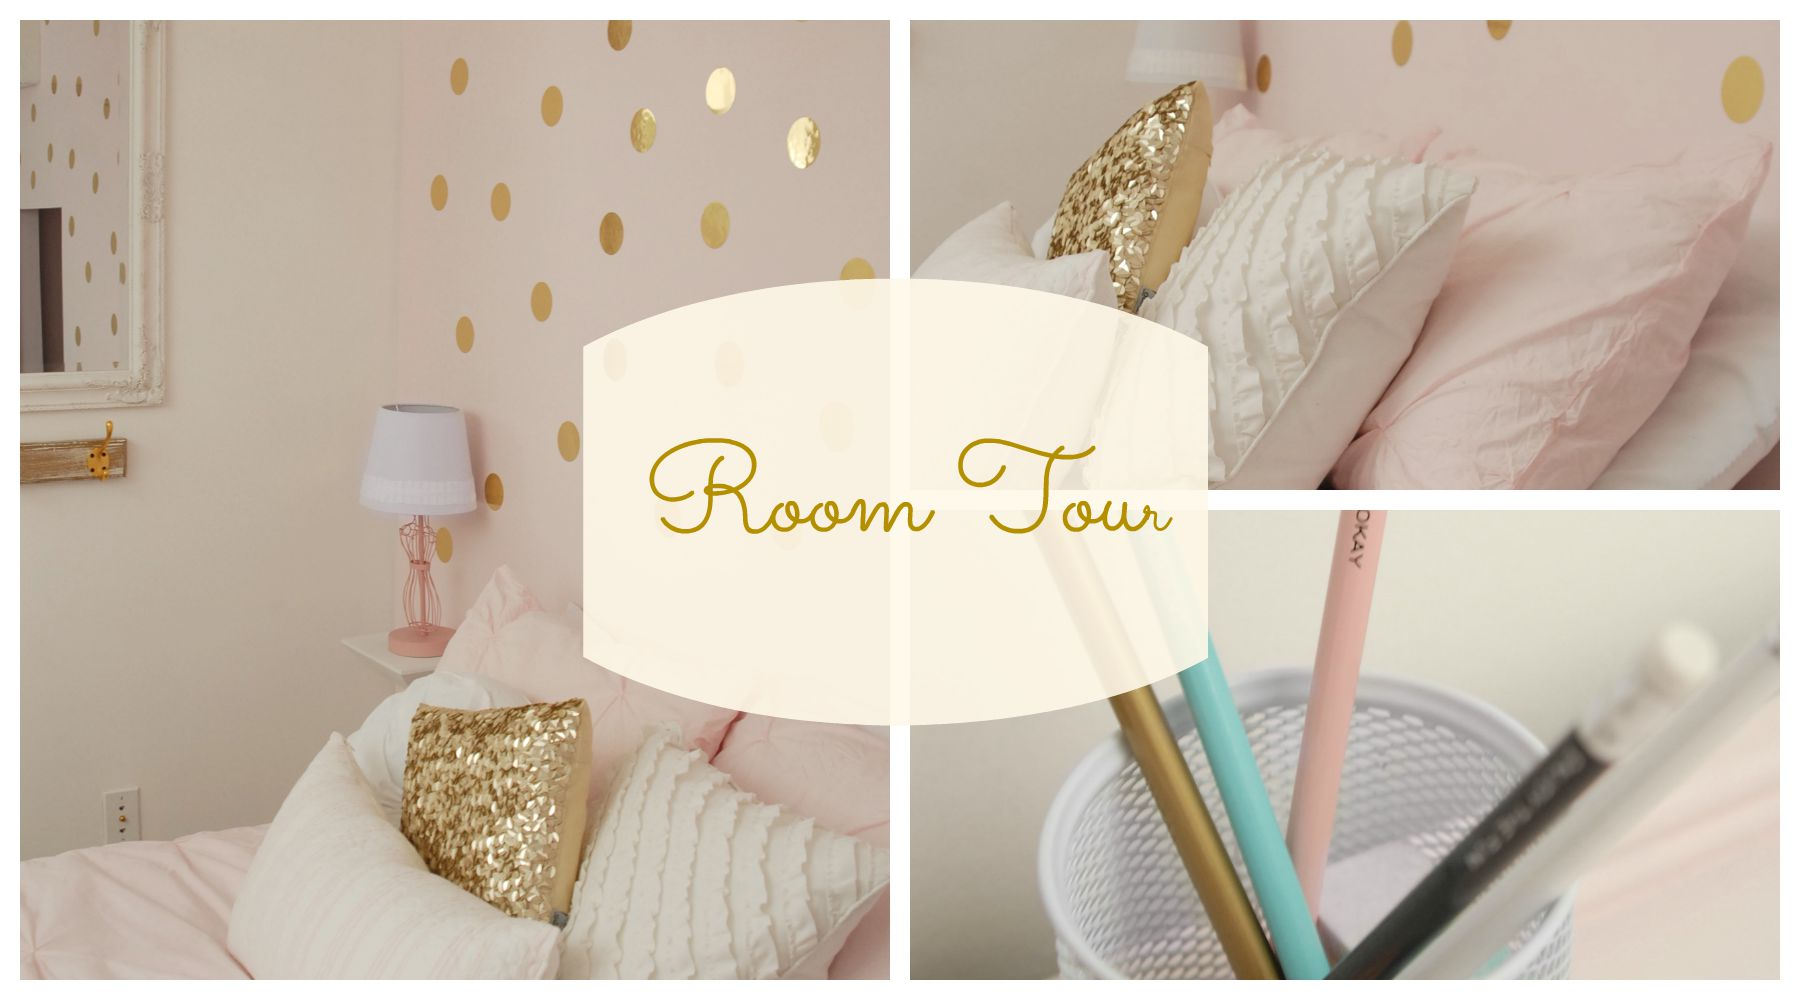 Room Tour | Hairstyles By Gabby